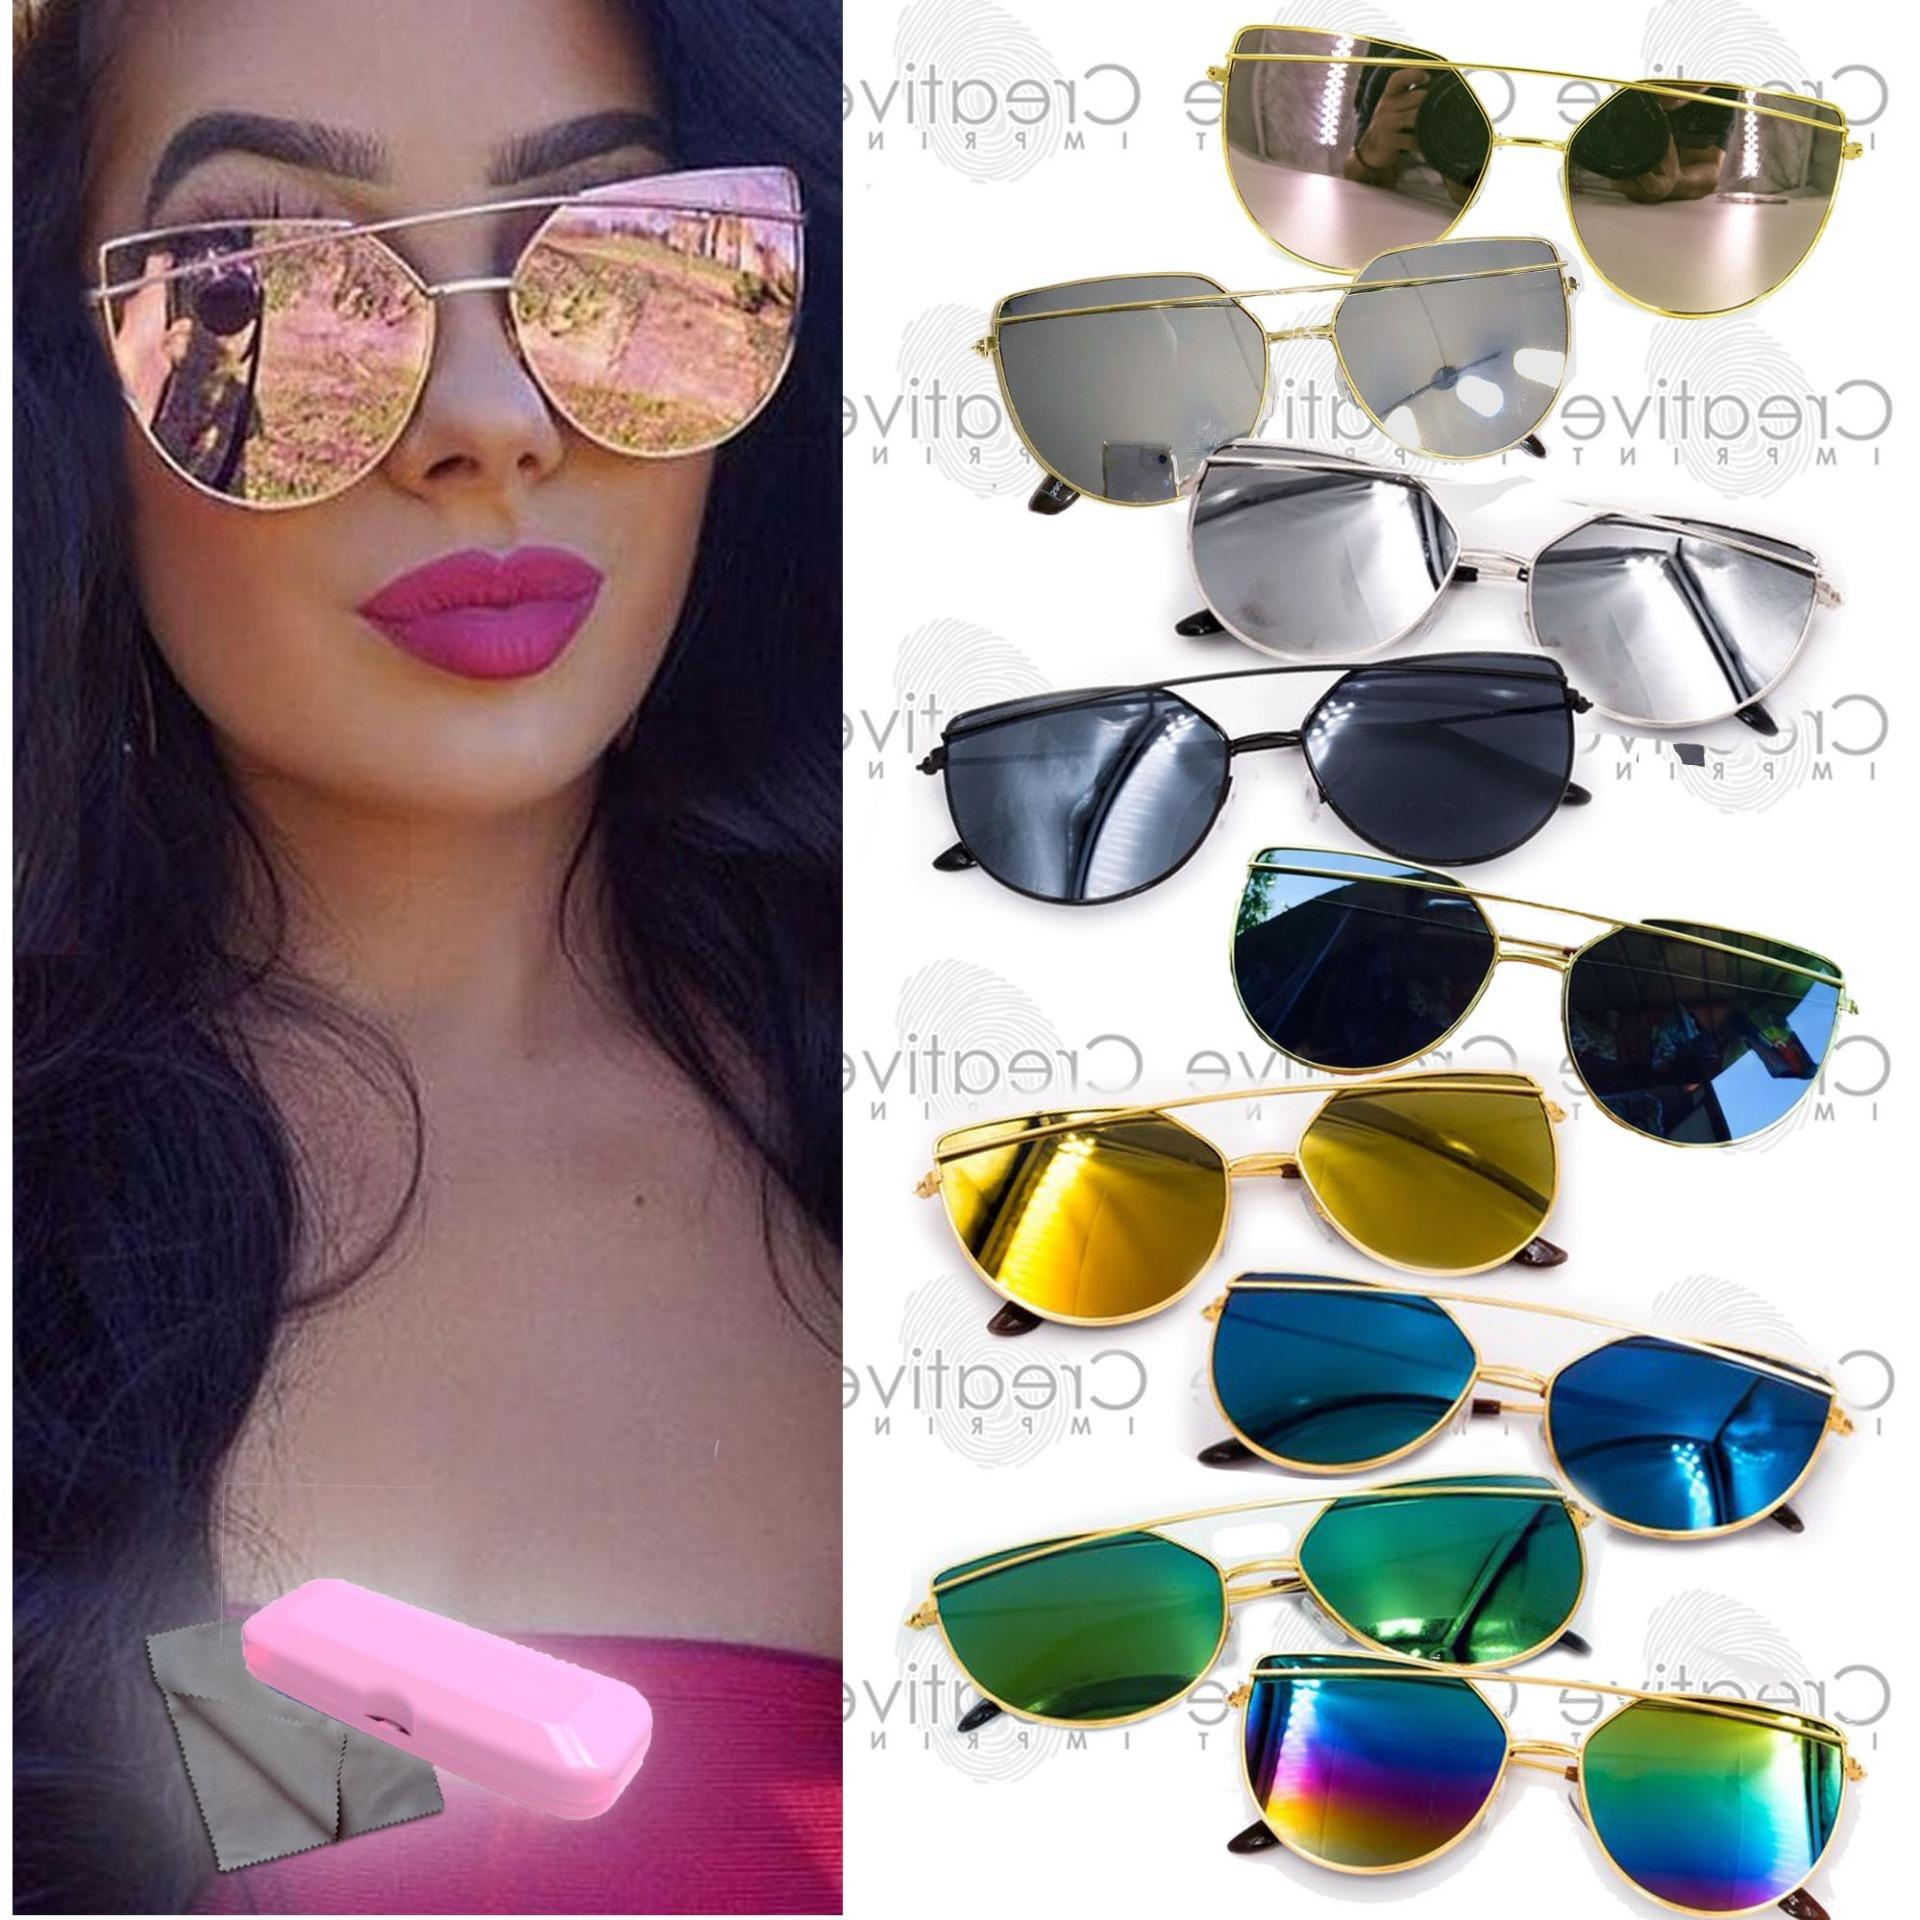 3b0a594ade84 Double Bridge Cat Eye Flat Sunnies Sunglasses (FREE CASE WIPER) Shades  Light Metal Lens